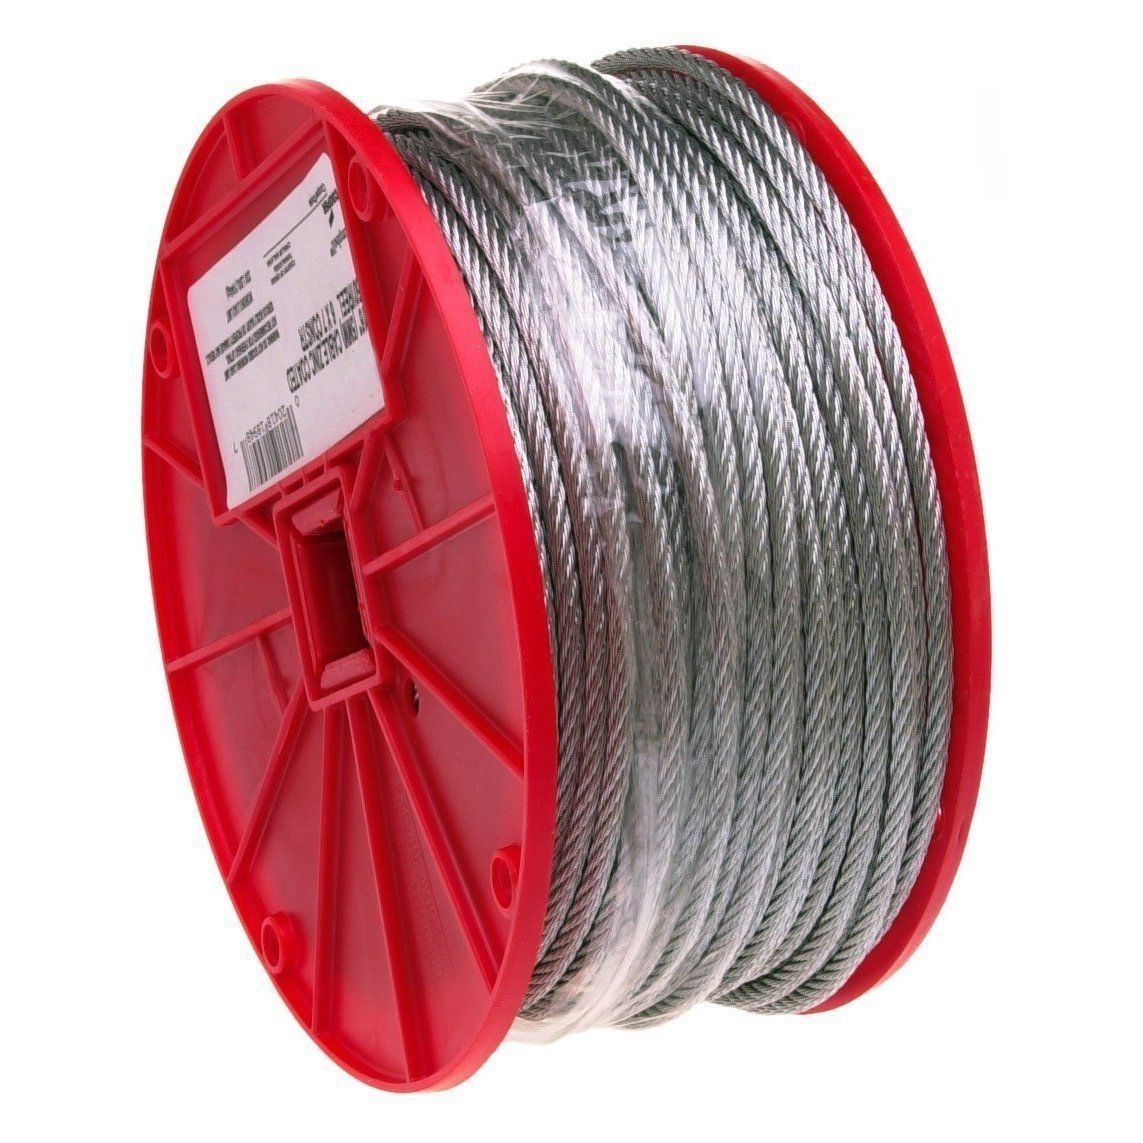 Galvanized Aircraft Steel Rope Cable 1 4 X 250 Roll 7000827 Cable Reel Galvanized Steel Stainless Steel Cable